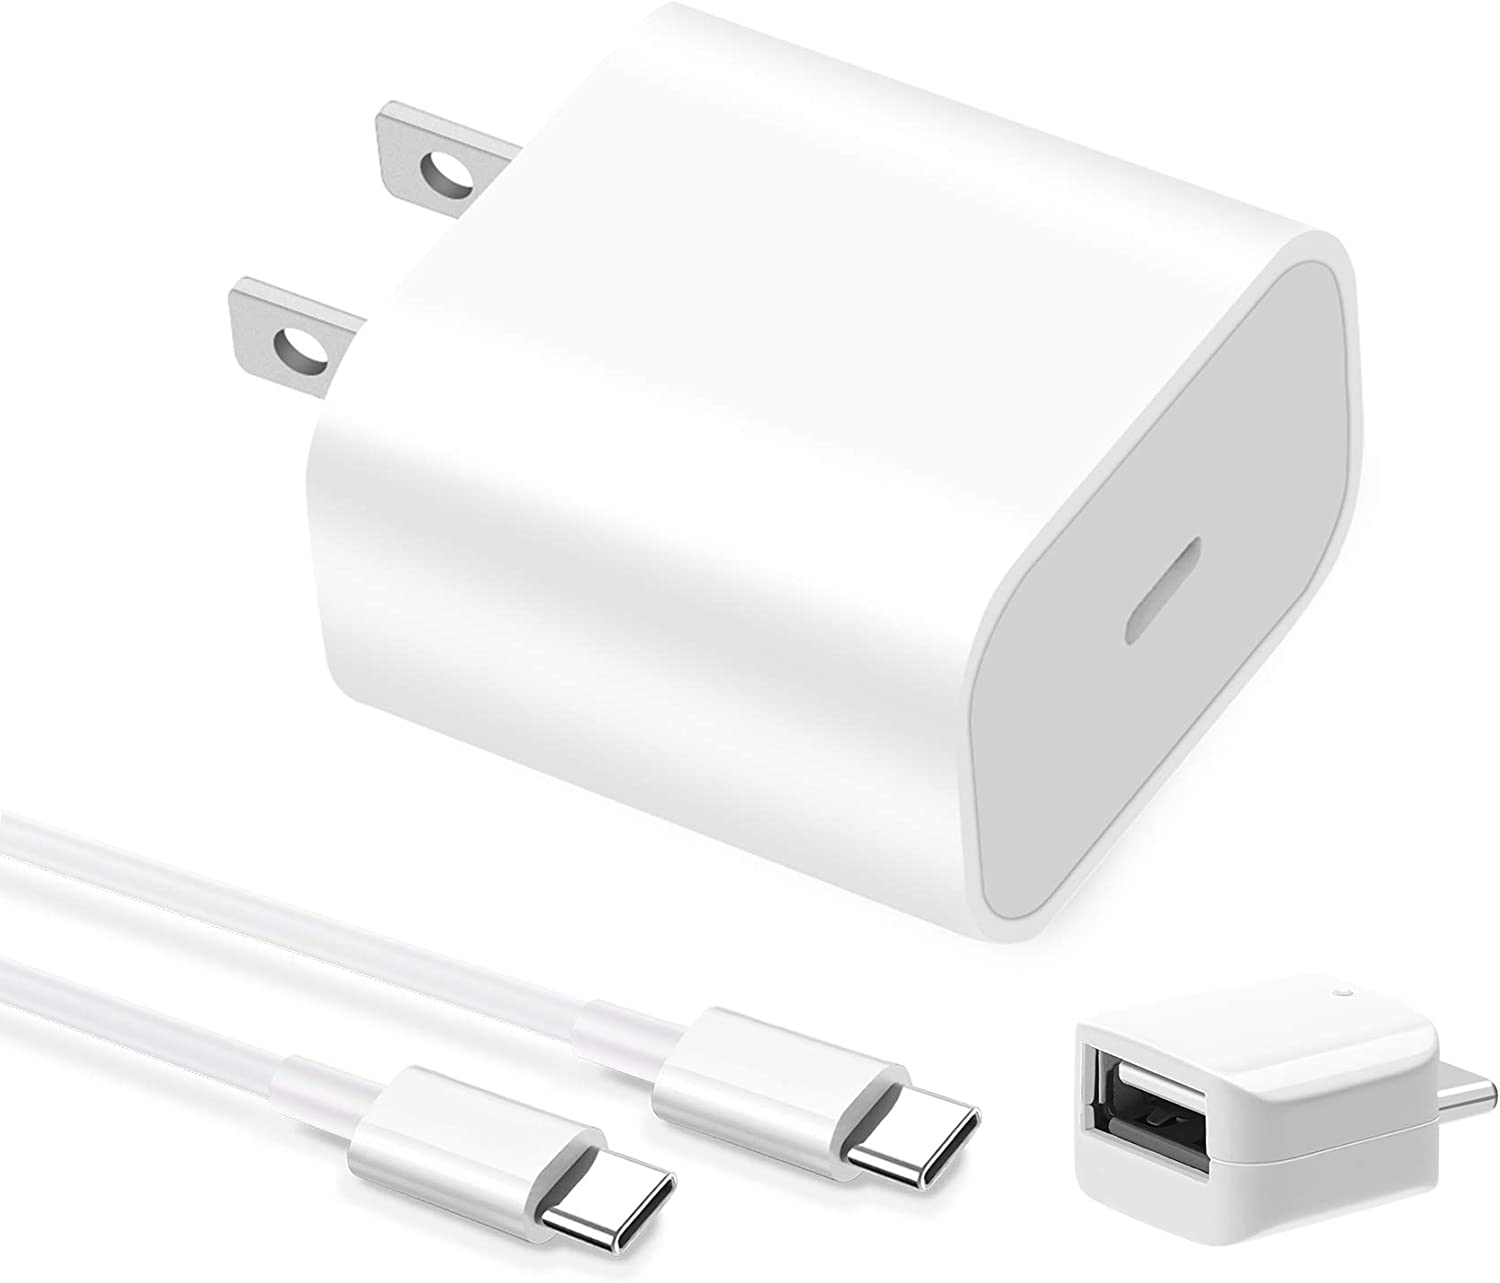 20W USB-C Power Adapter Fast Charging Wall Charger Block with 6.6ft USB C to C Cable for iPad Pro 12.9, Pro 11 inch 2020/2018, New Air 4 10.5, Samsung Galaxy S20 S10 S9 S8 Pixel 2 3 4 XL 2XL 3XL 4XL